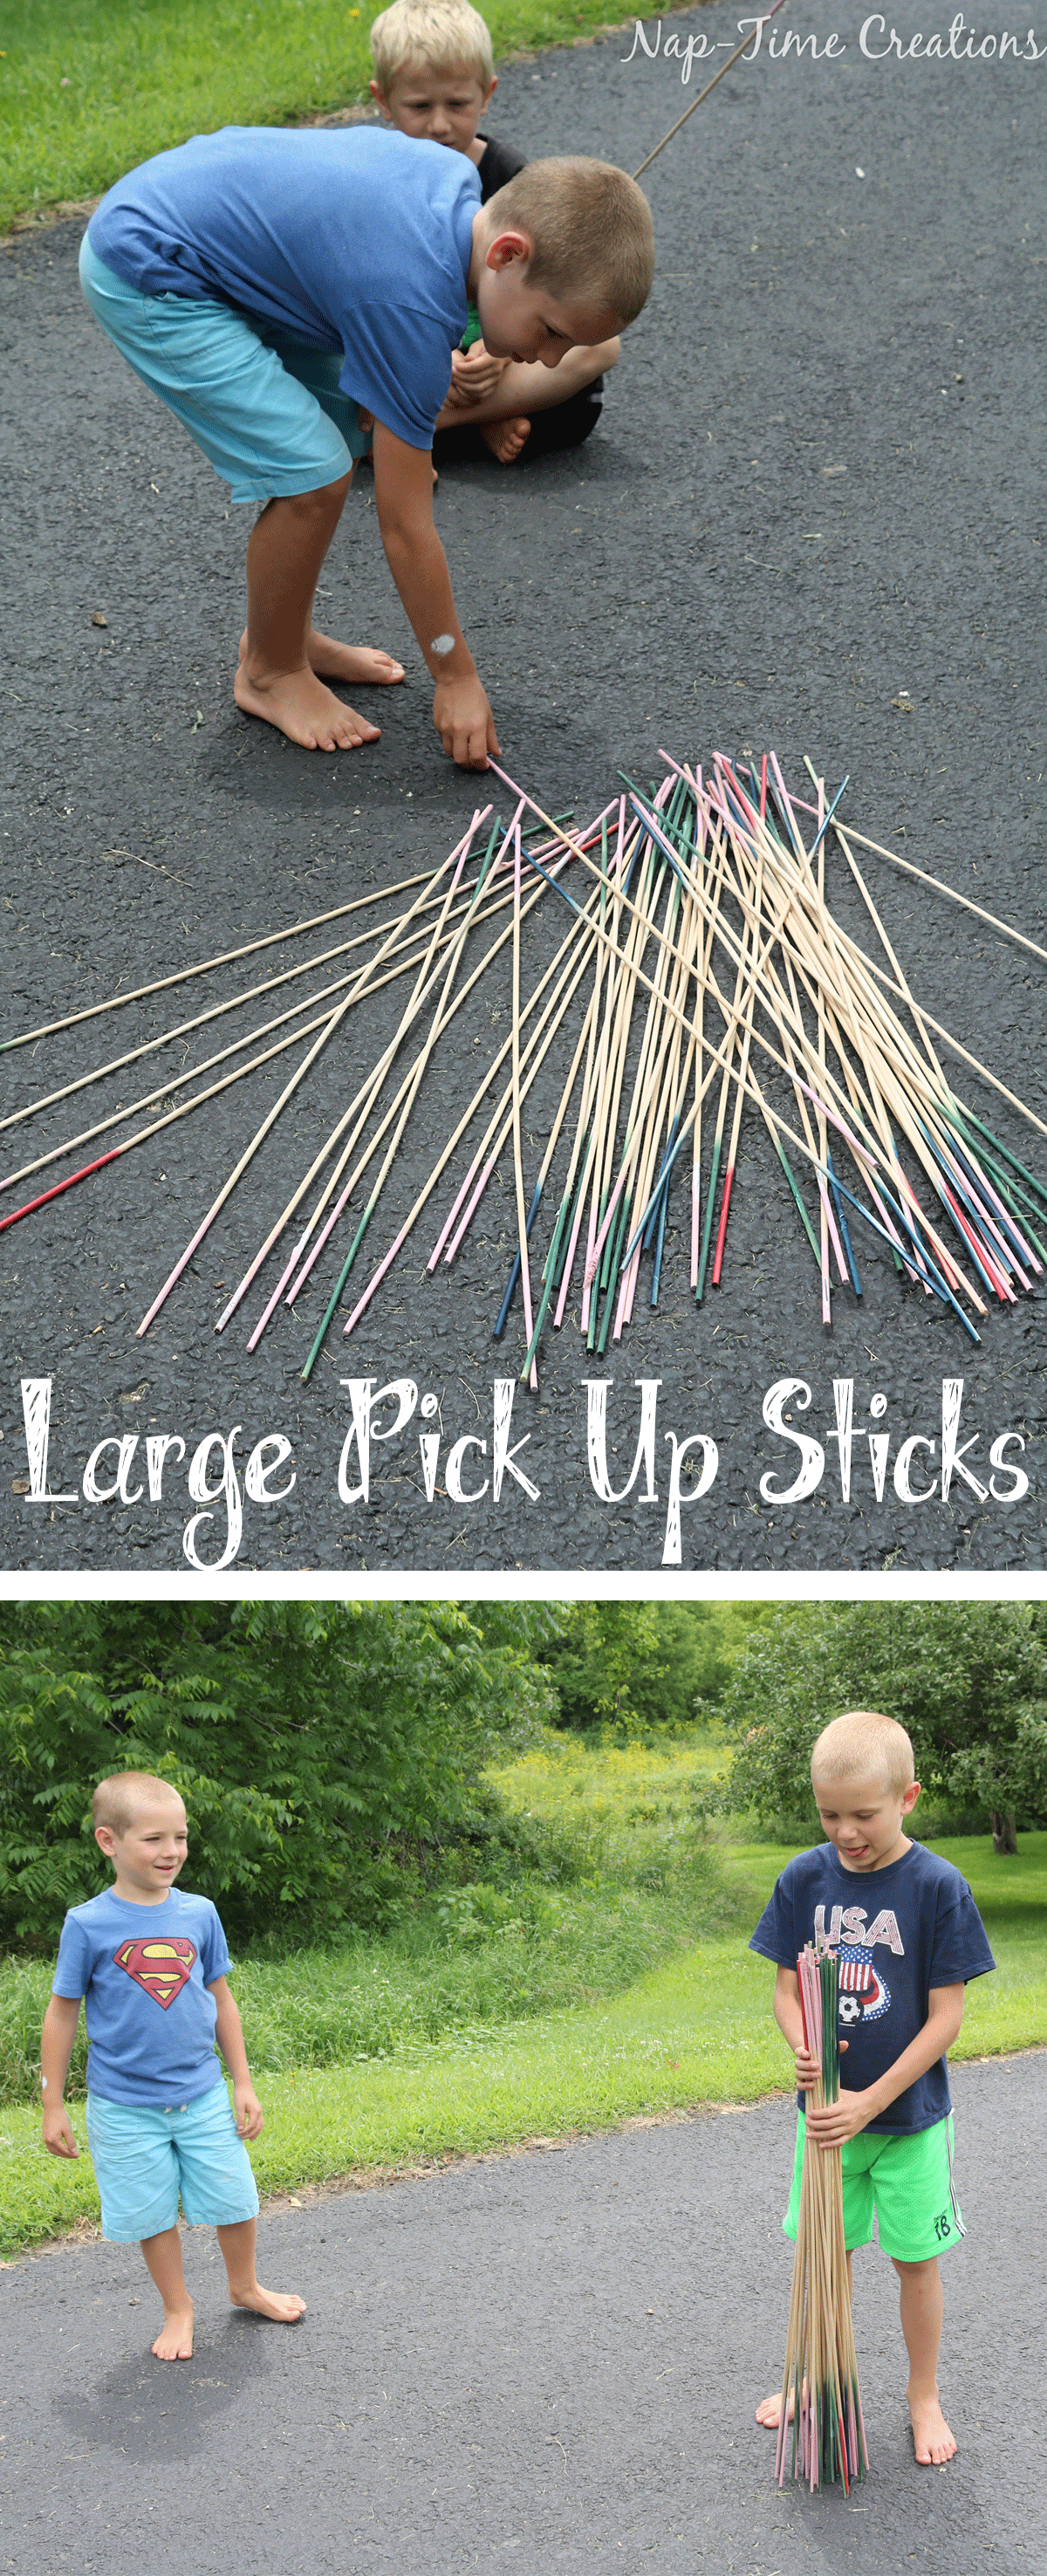 Love this extra large pick up sticks game A perfect outdoor game